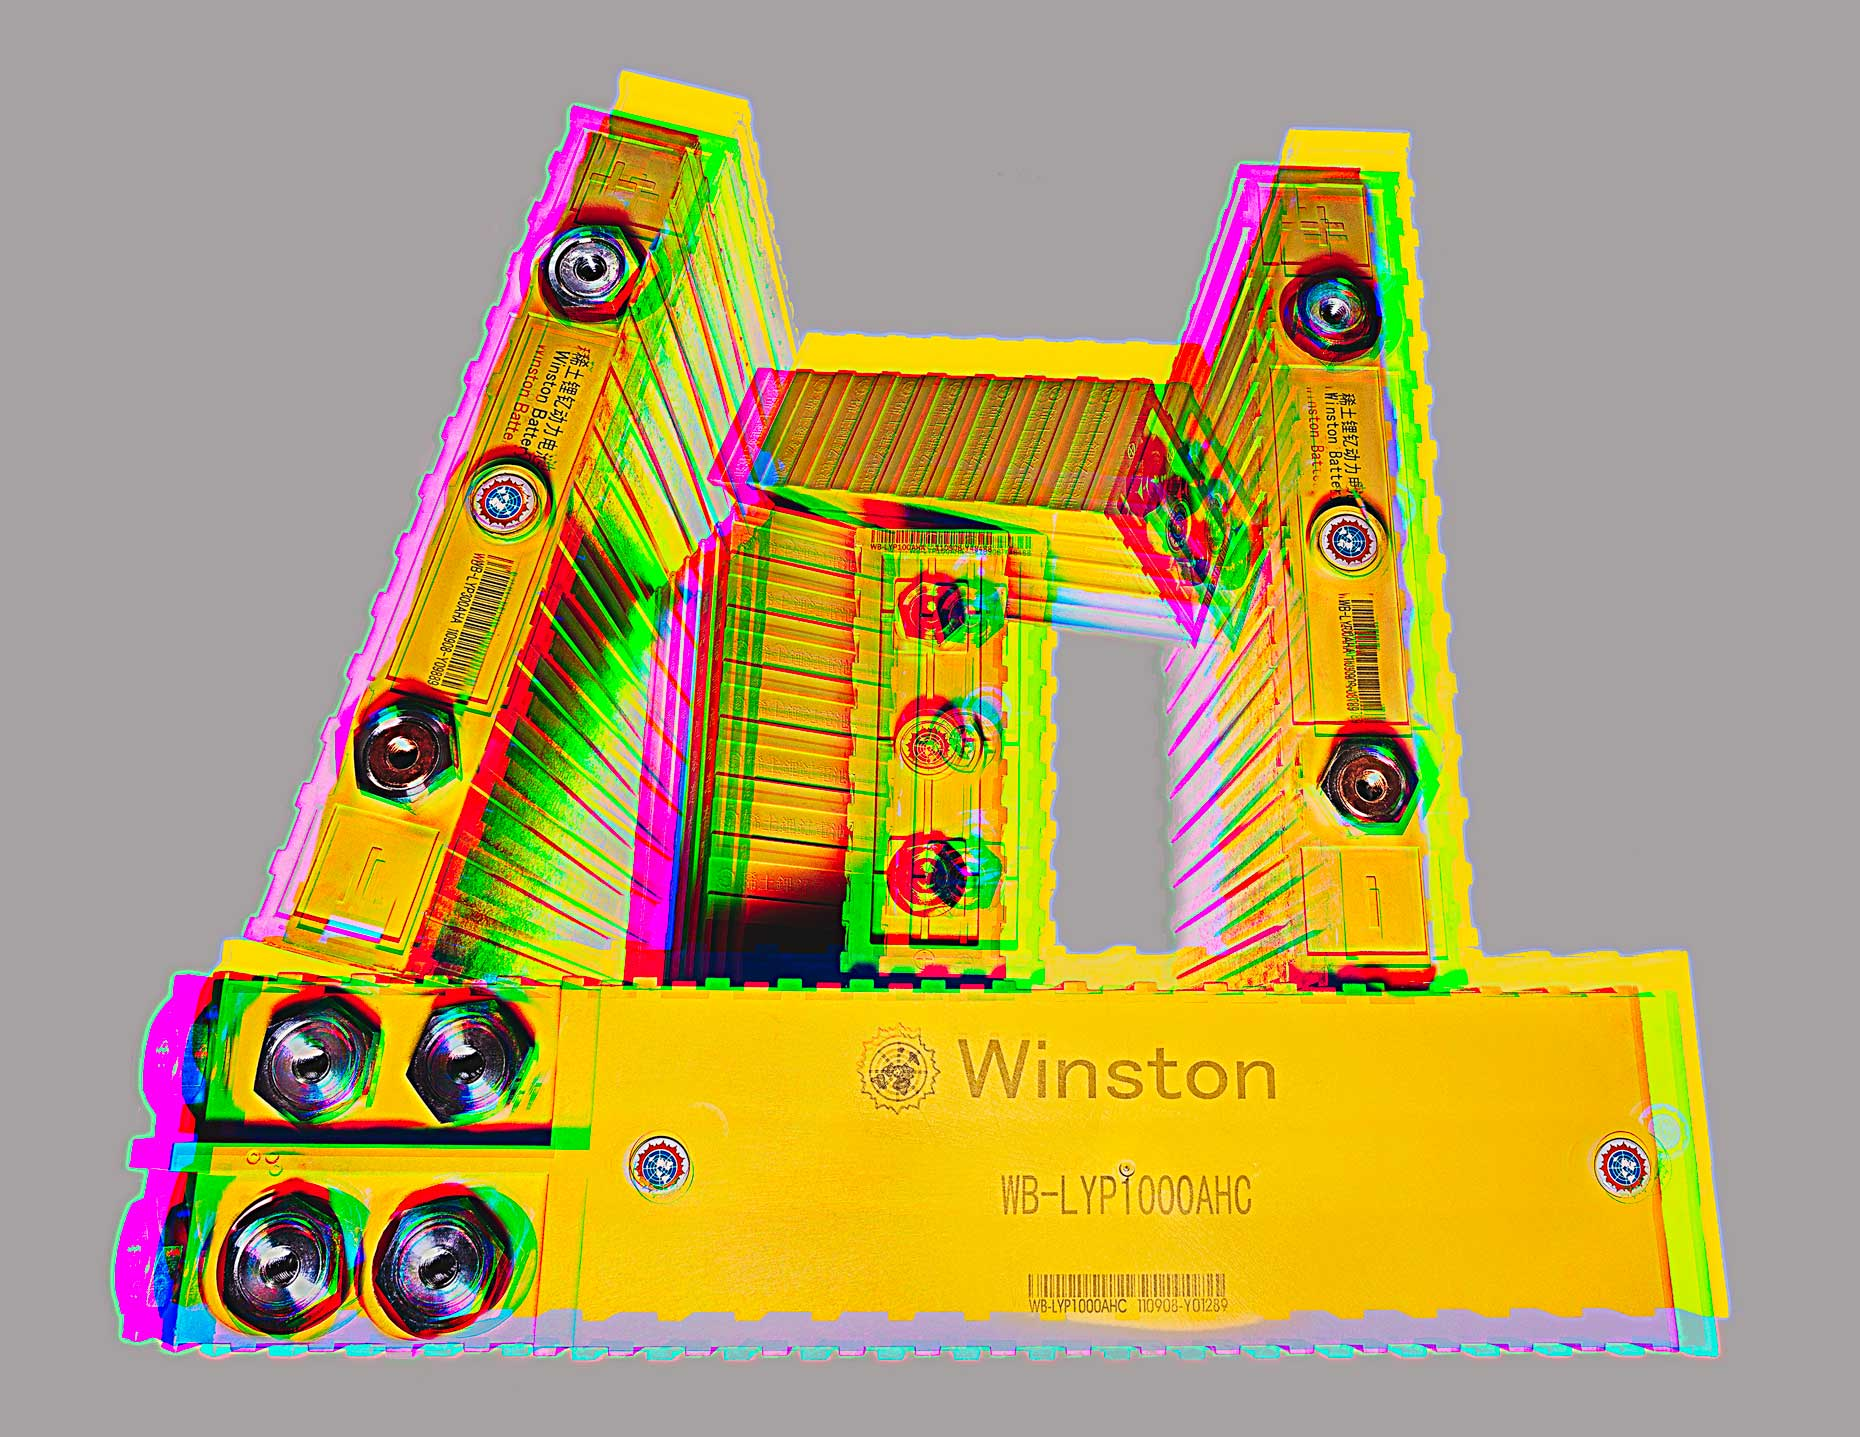 Winston Batteries Advertising Campaign